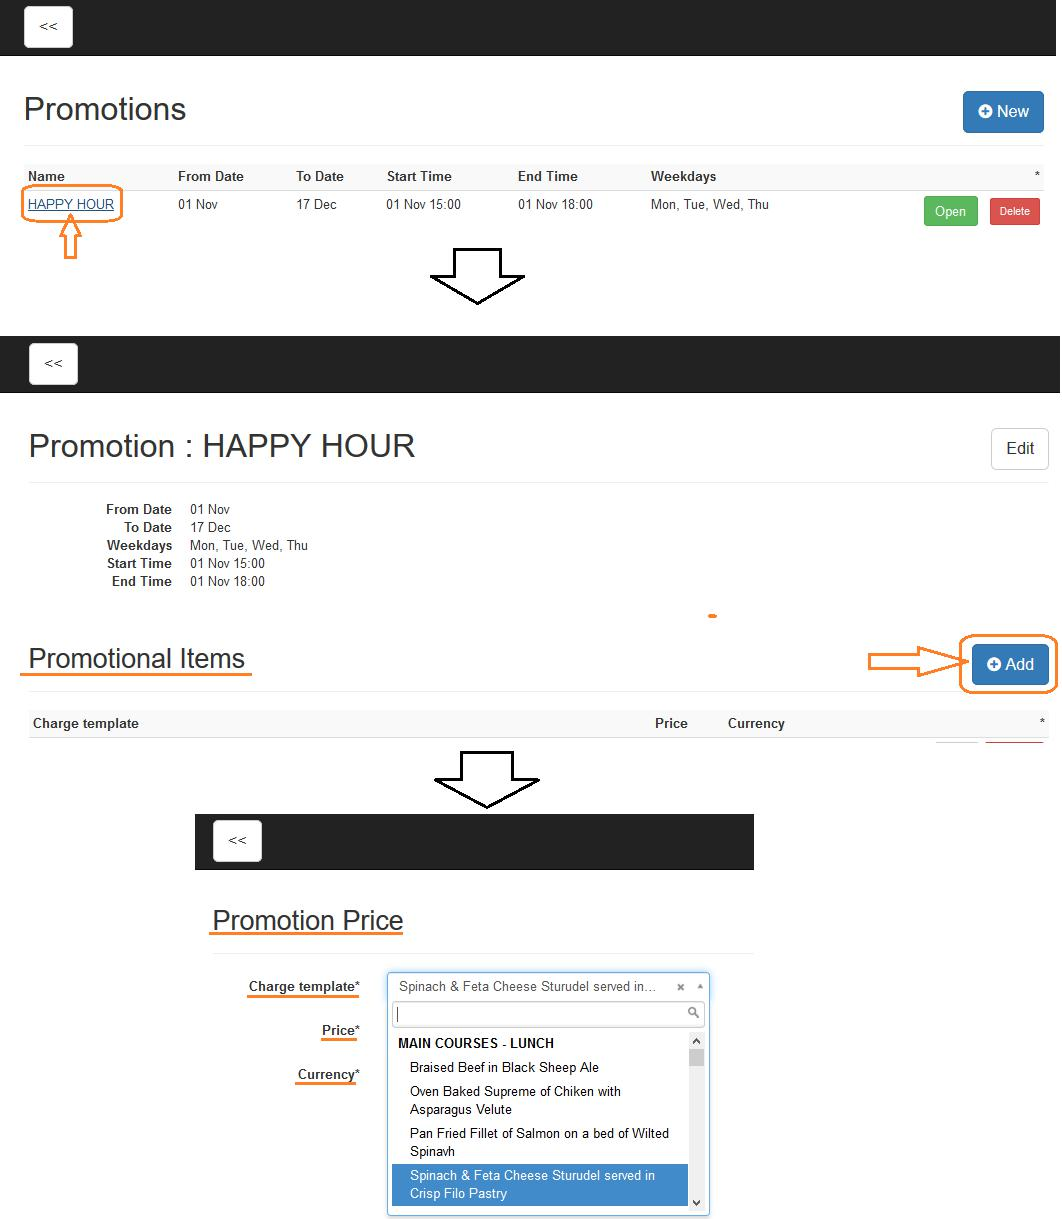 Promotions in Clock POS